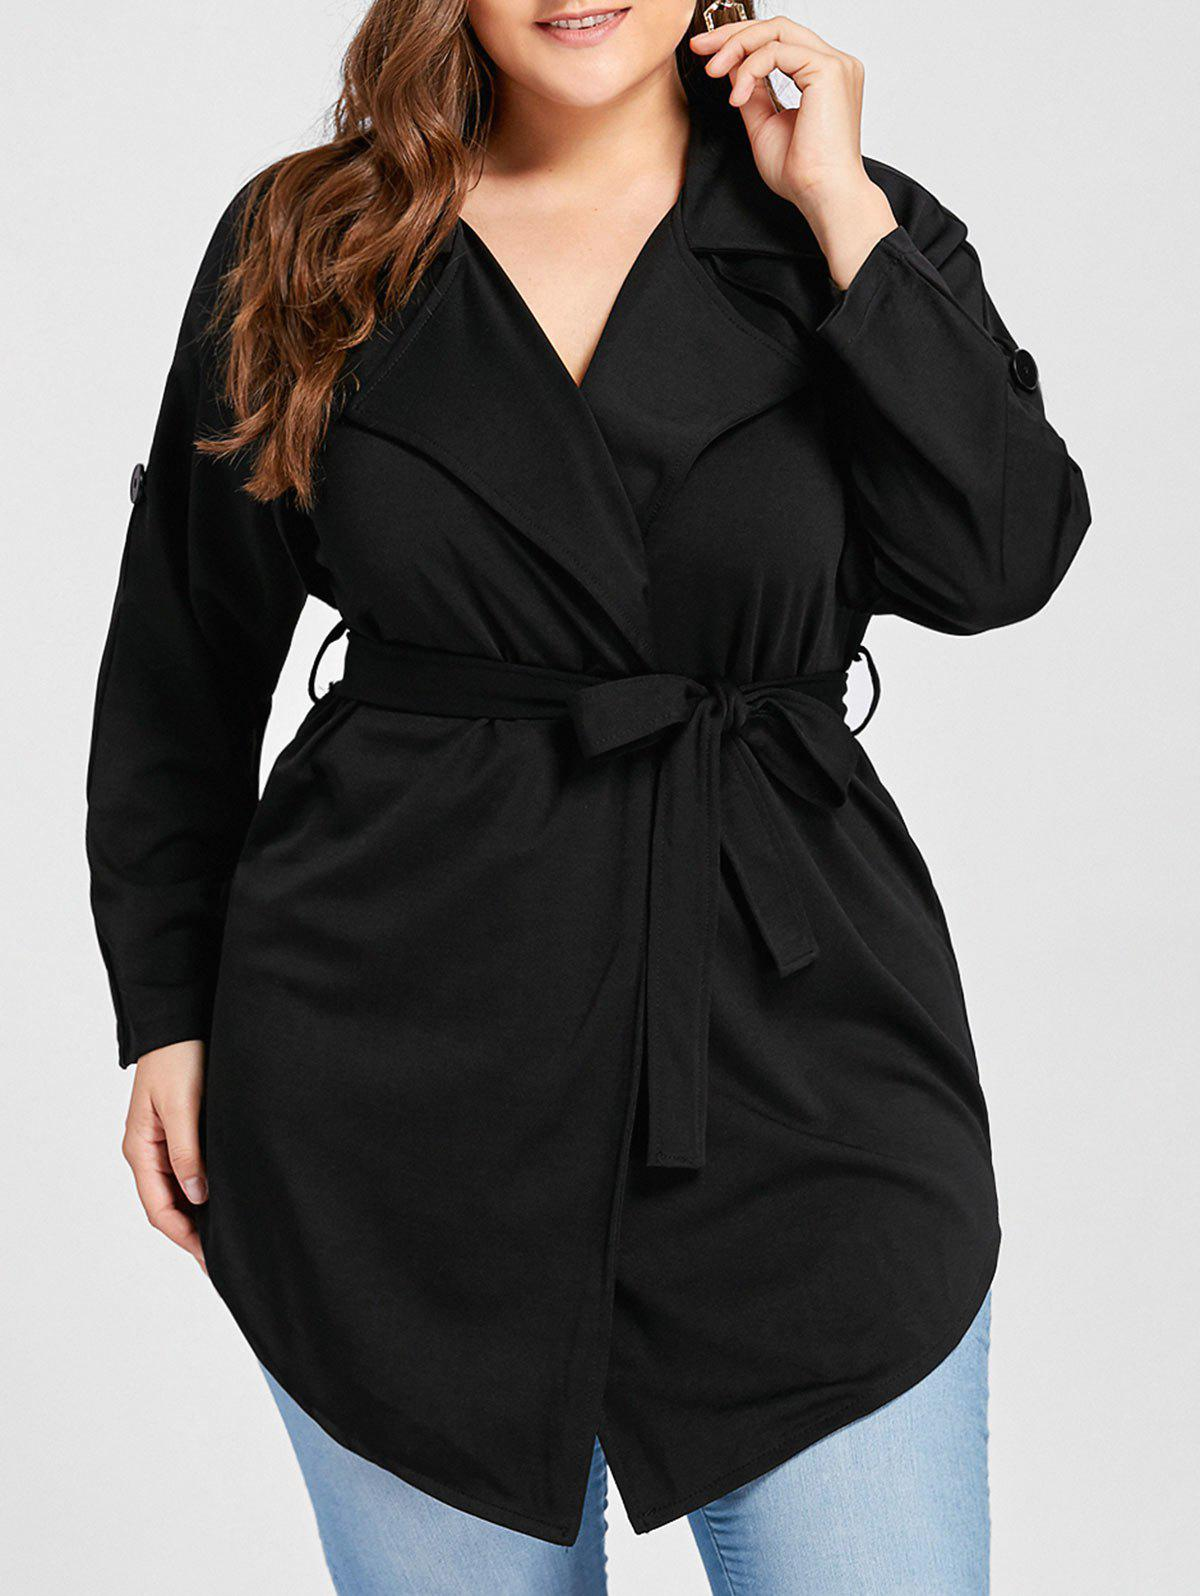 Plus Size Lapel Wrap Trench Coat lapel cotton trench coat